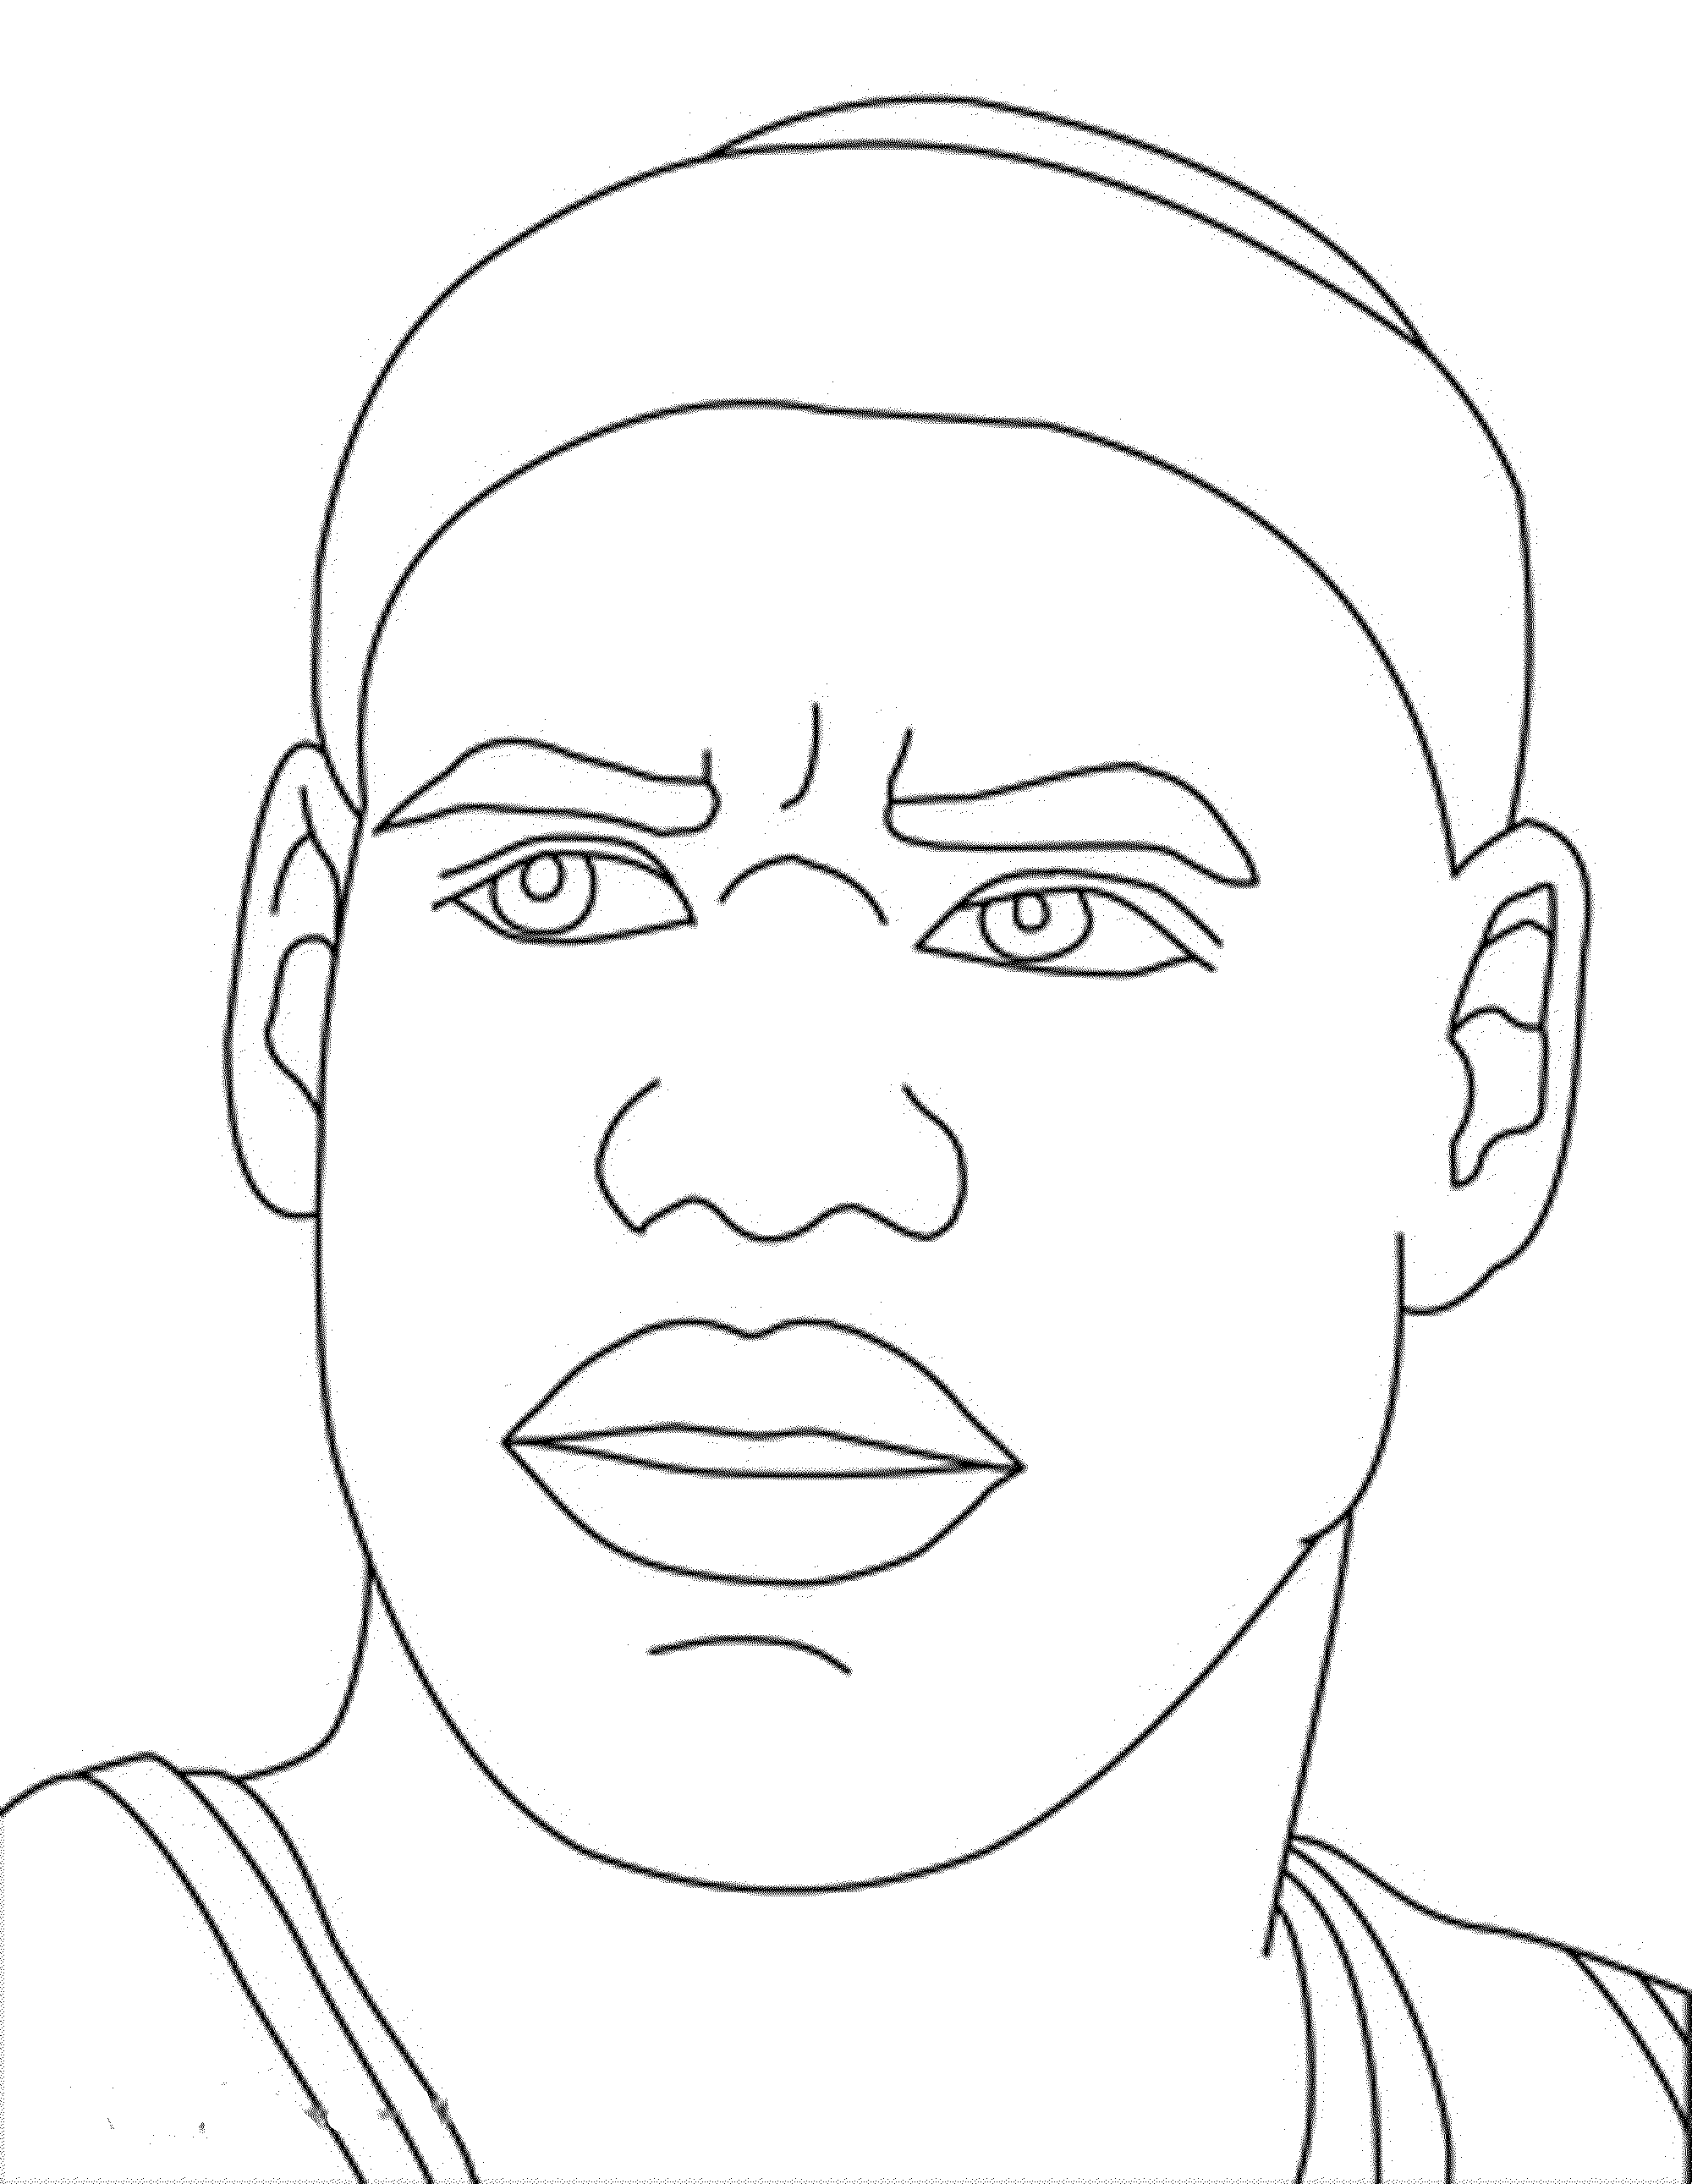 lebron james coloring pages lebron james coloring pages to download and print for free pages lebron james coloring